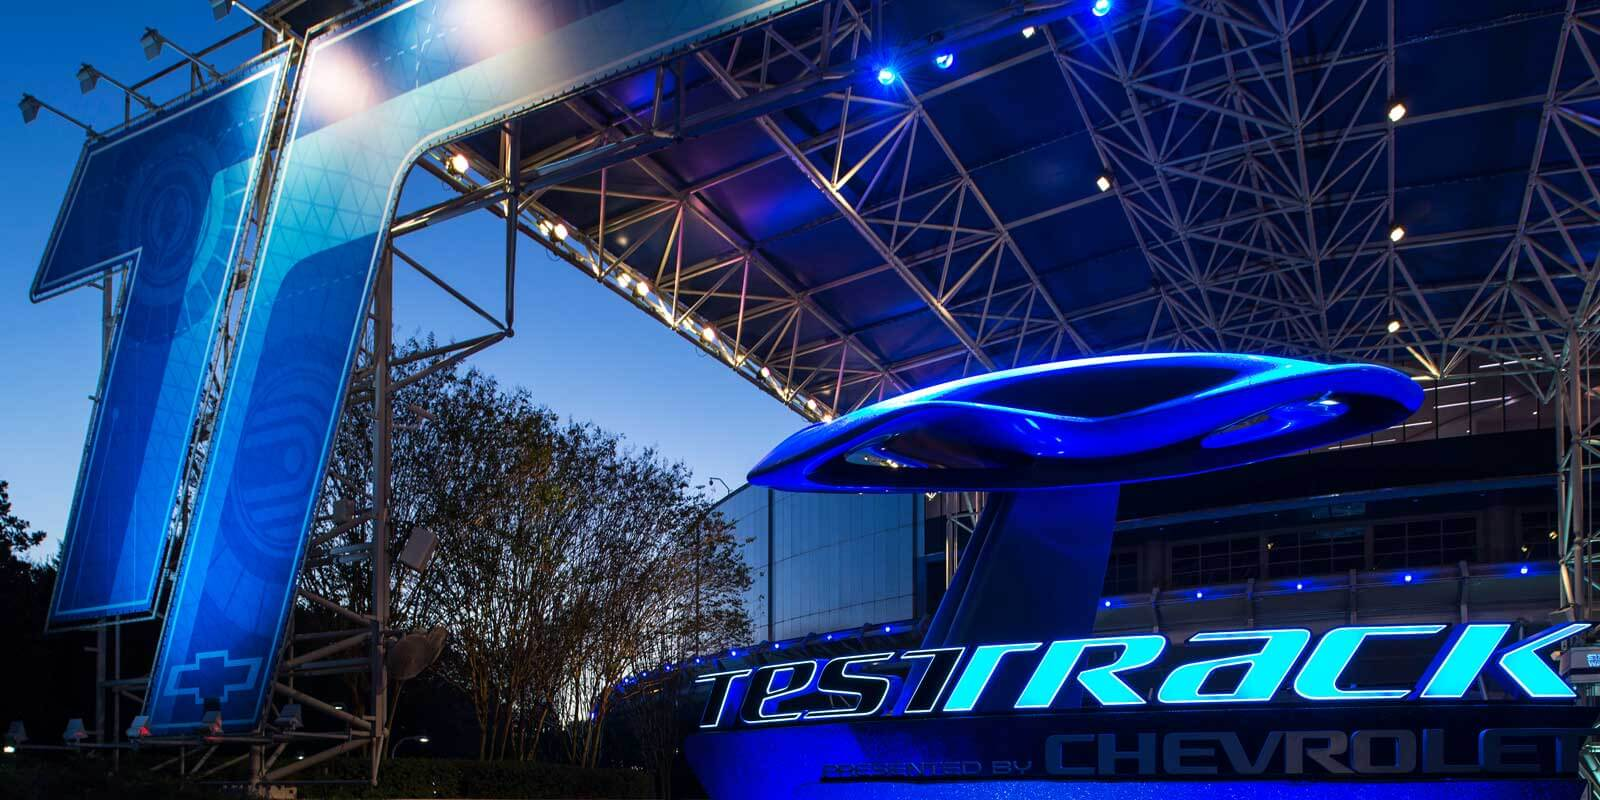 Closeup of the Epcot ride, Test Track, during early evening.